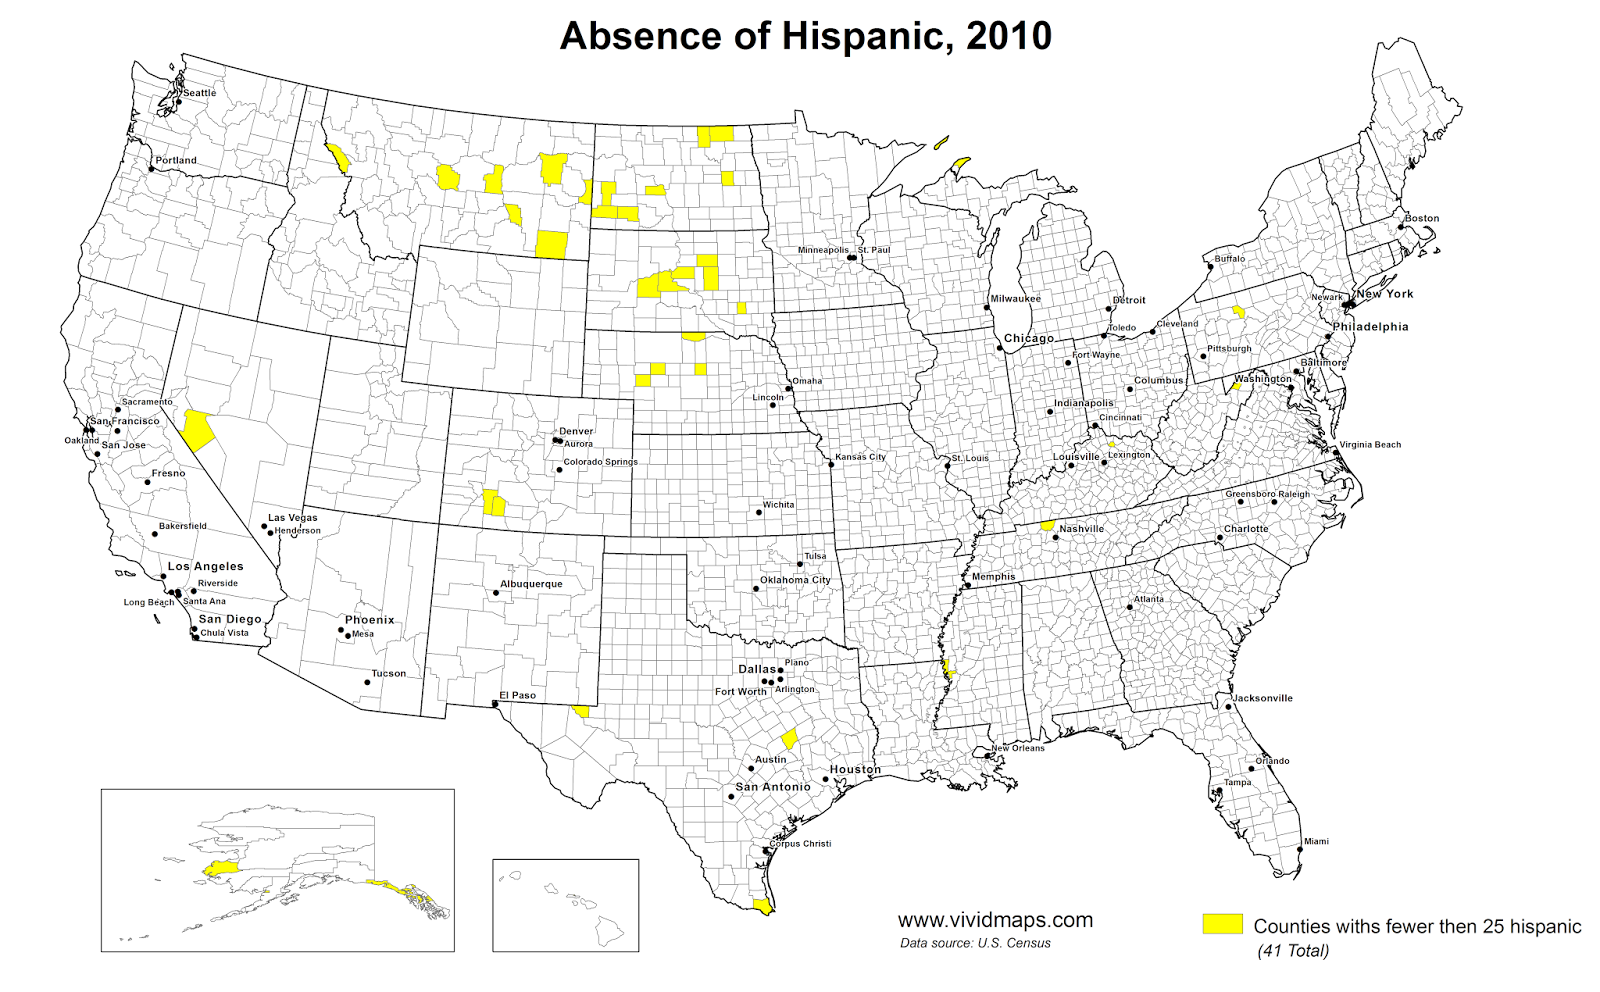 Counties with fewer than 25 hispanic Americans, 2010